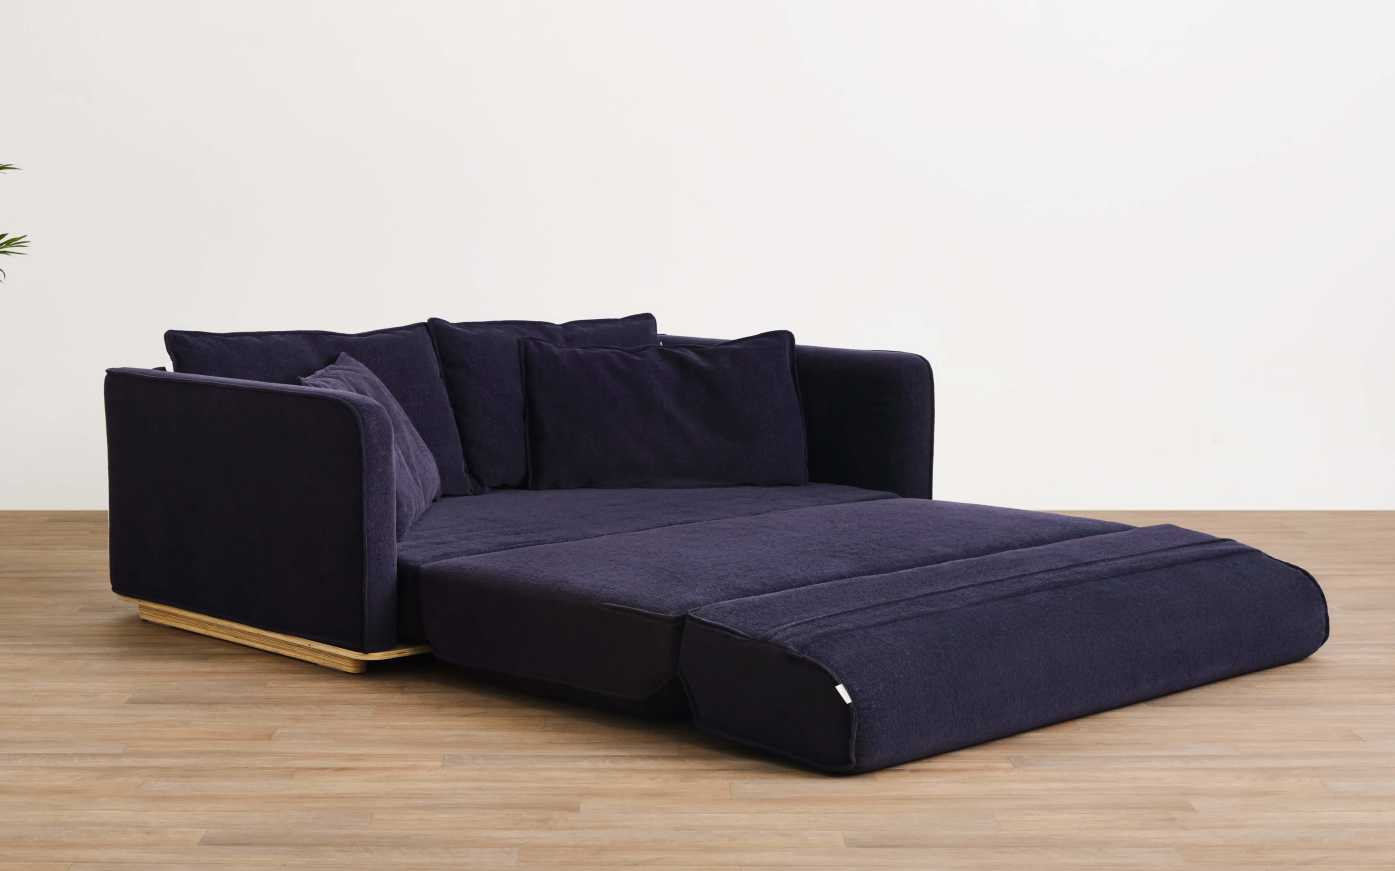 Aussie furniture brand Koala famous for comfy mattresses and sofas has launched new Cushy Sofa Bed that can be transformed effortlessly without any tools